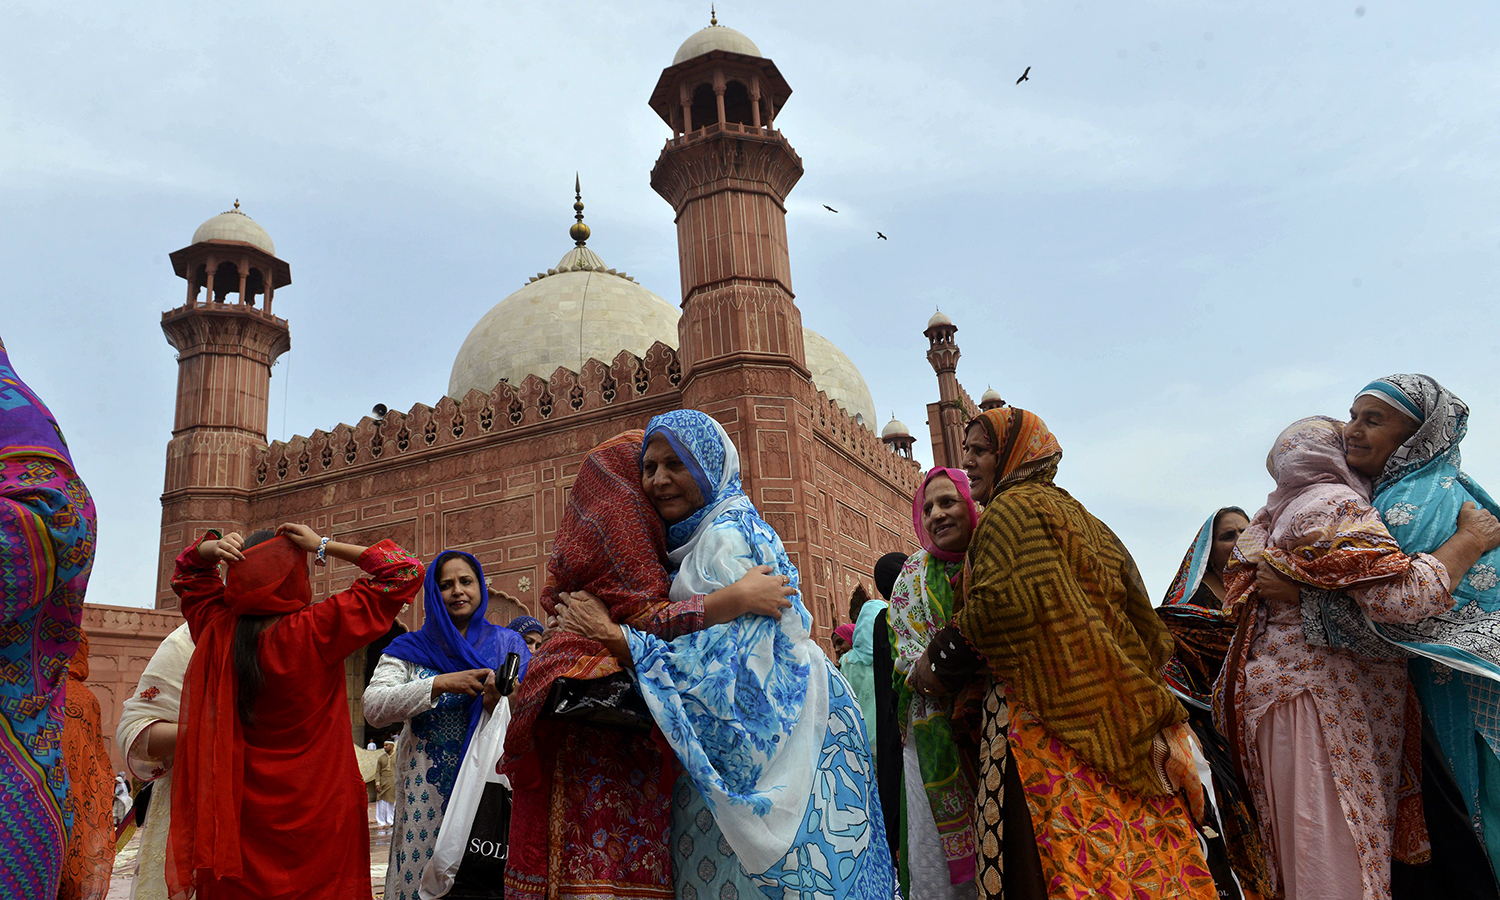 LAHORE: Women hug each other after offering the Eidul Fitr prayers at the Badshahi Masjid on Wednesday. —AFP /Arif Ali